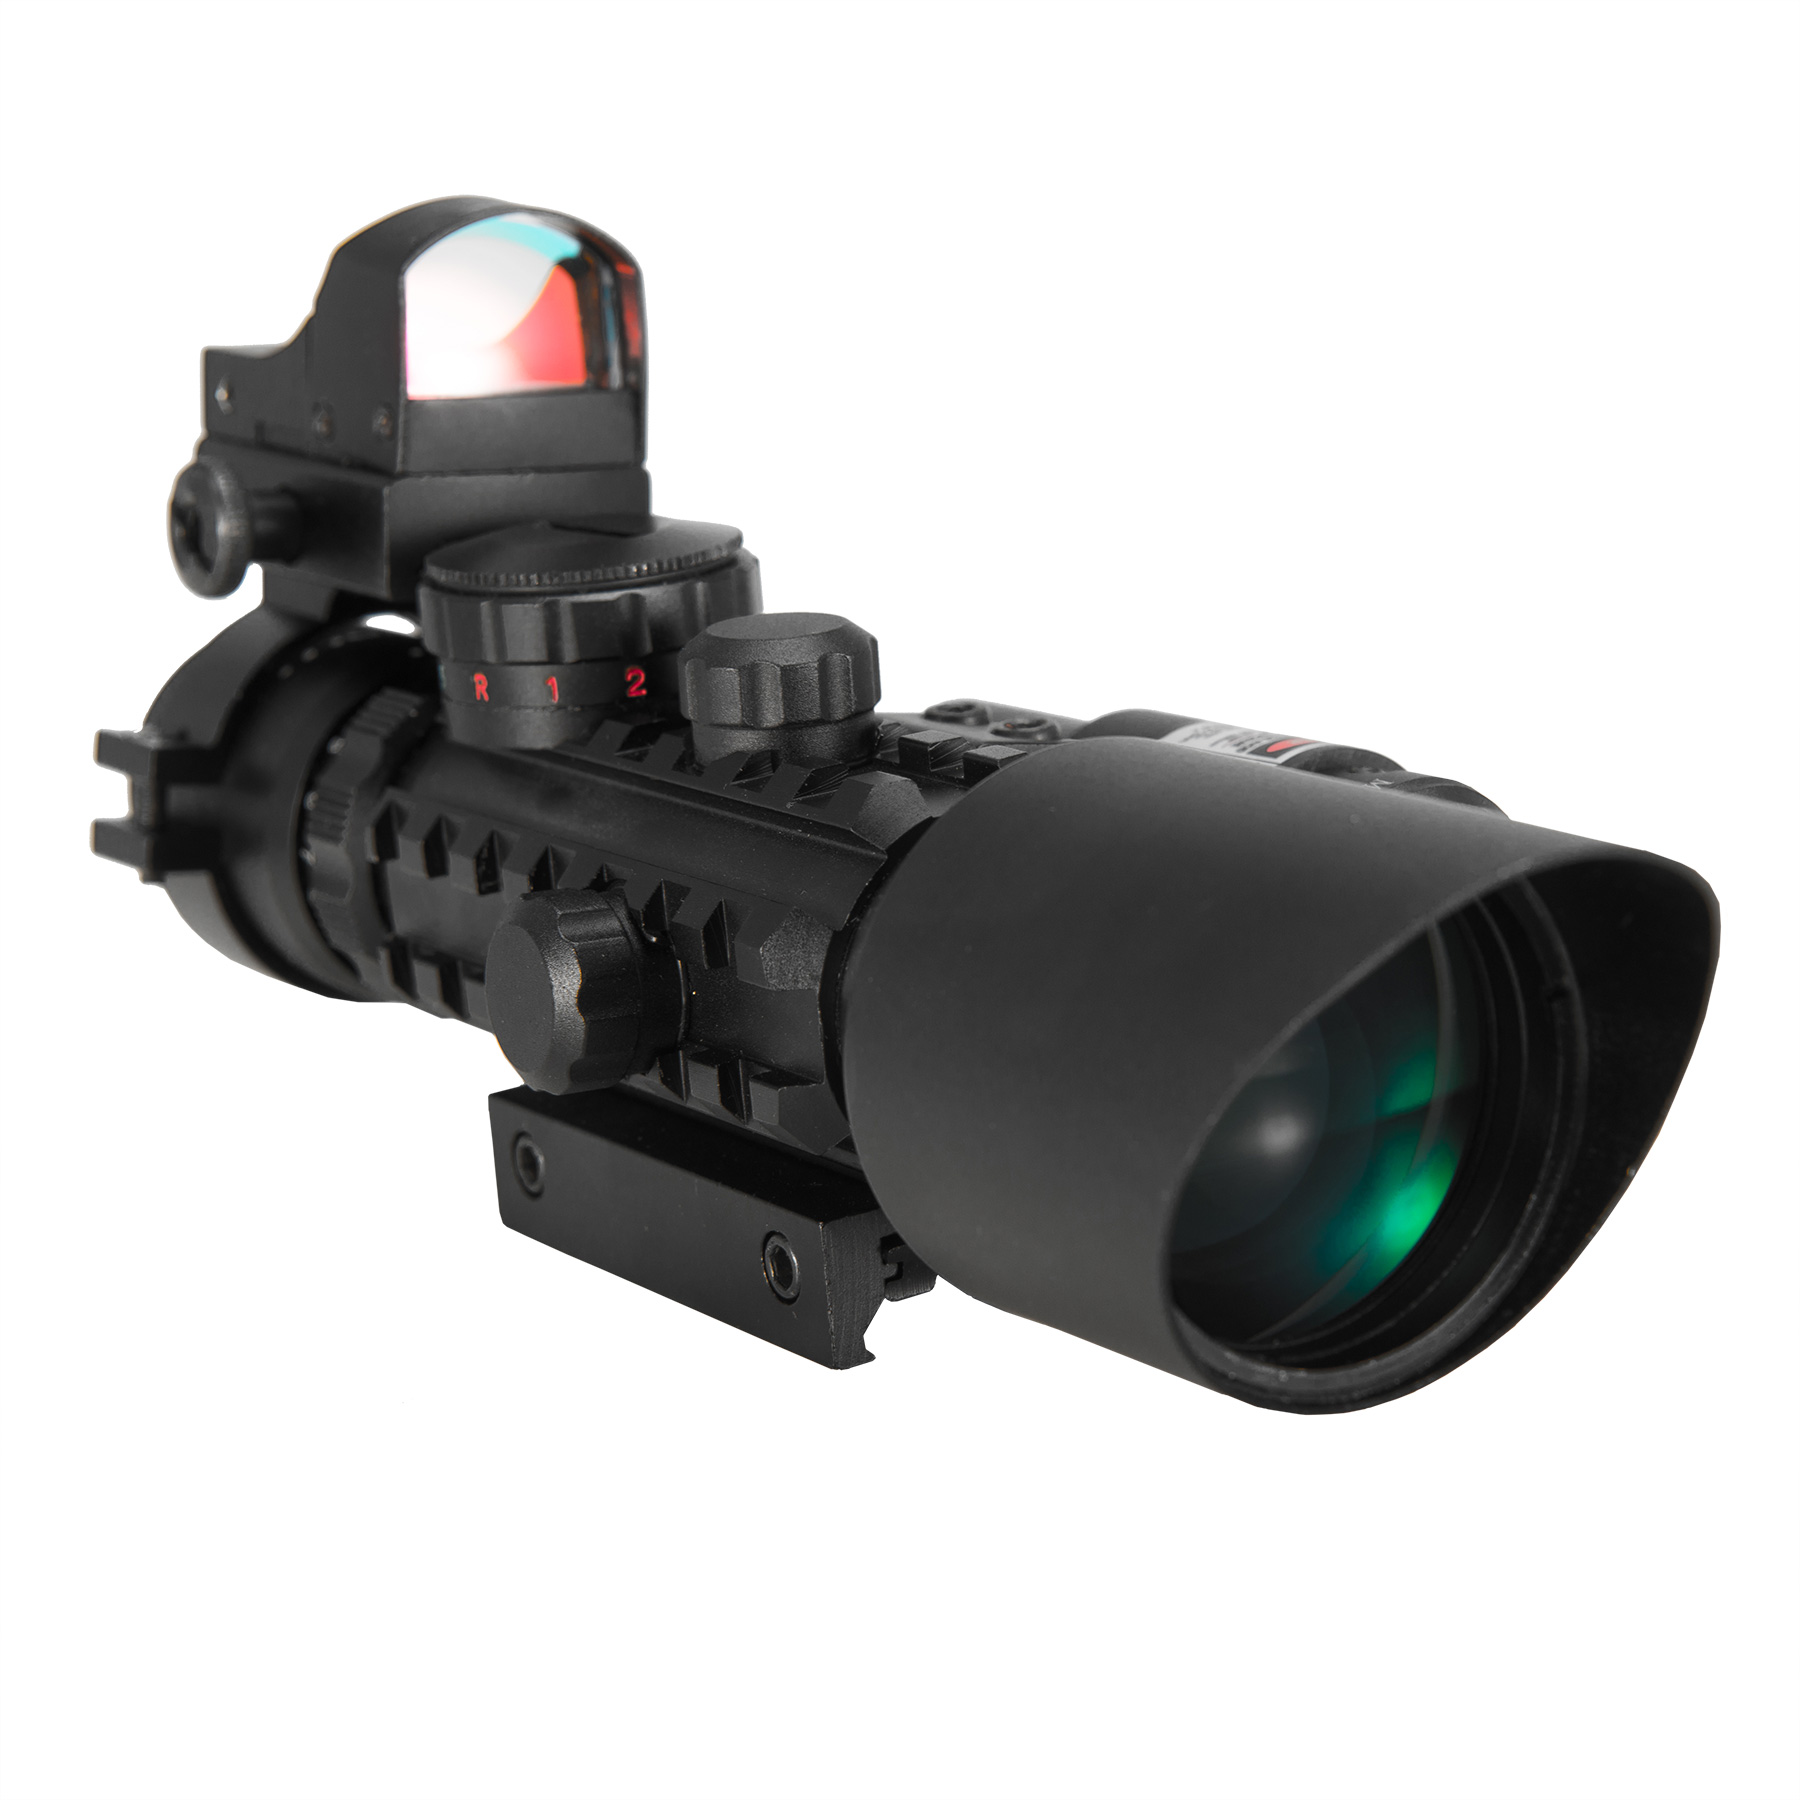 Premium 3-in-1 combo 3-10x40EG Mil Dot Rangefinder Tactical Riflescope Reticle with Laser Sight and Red Dot Sight... by Pinty